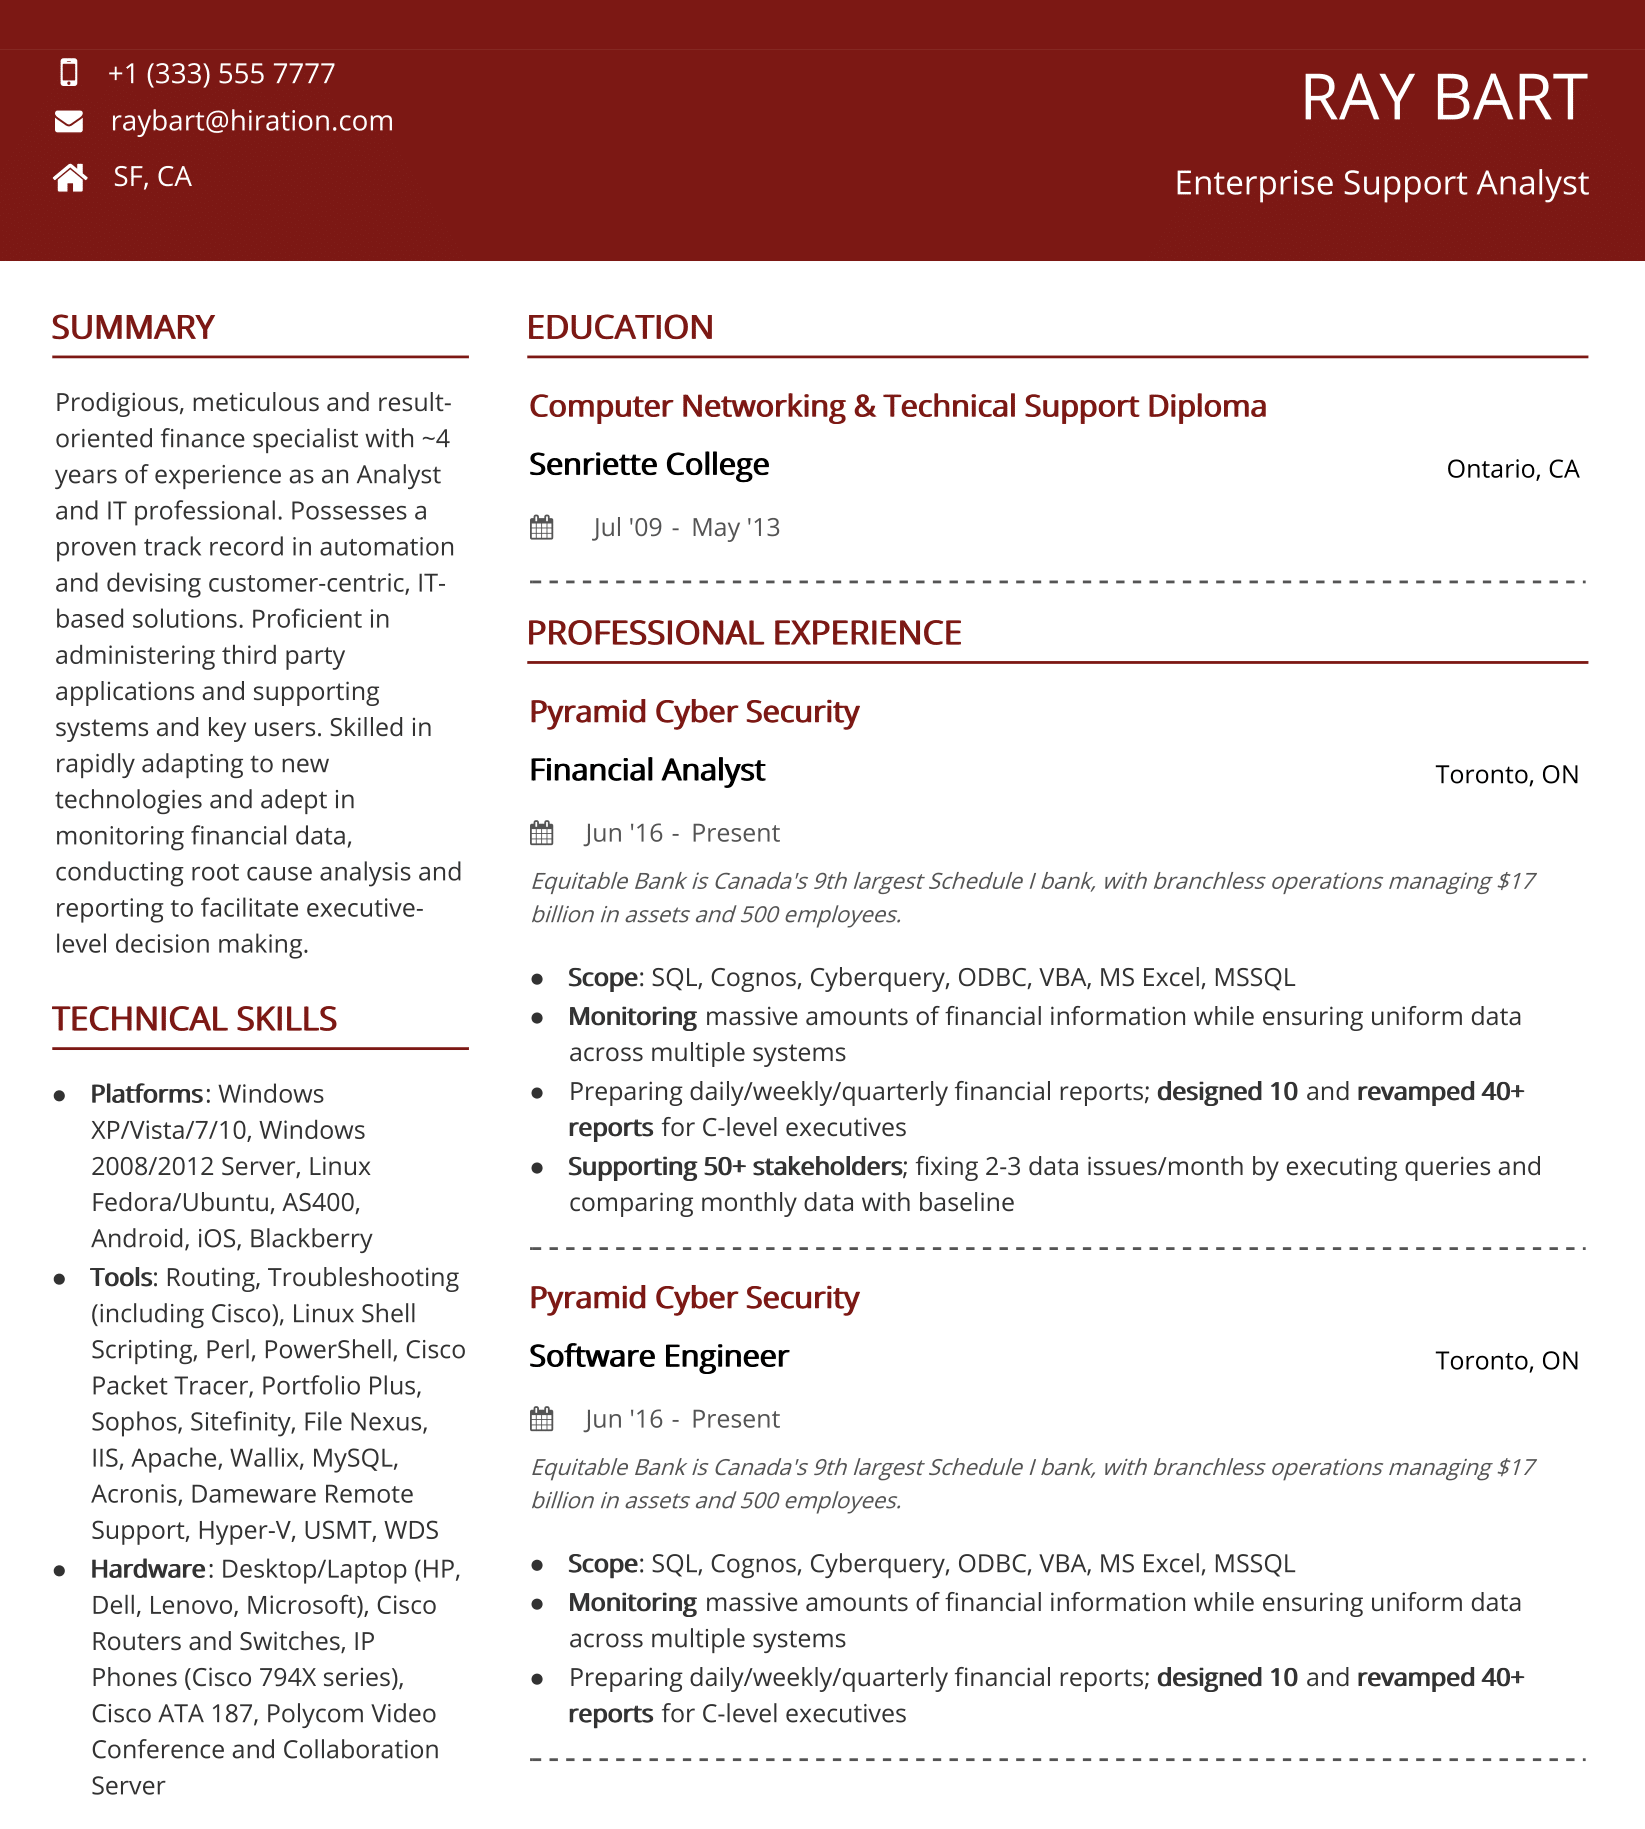 vibrant-red-clean-resume-template